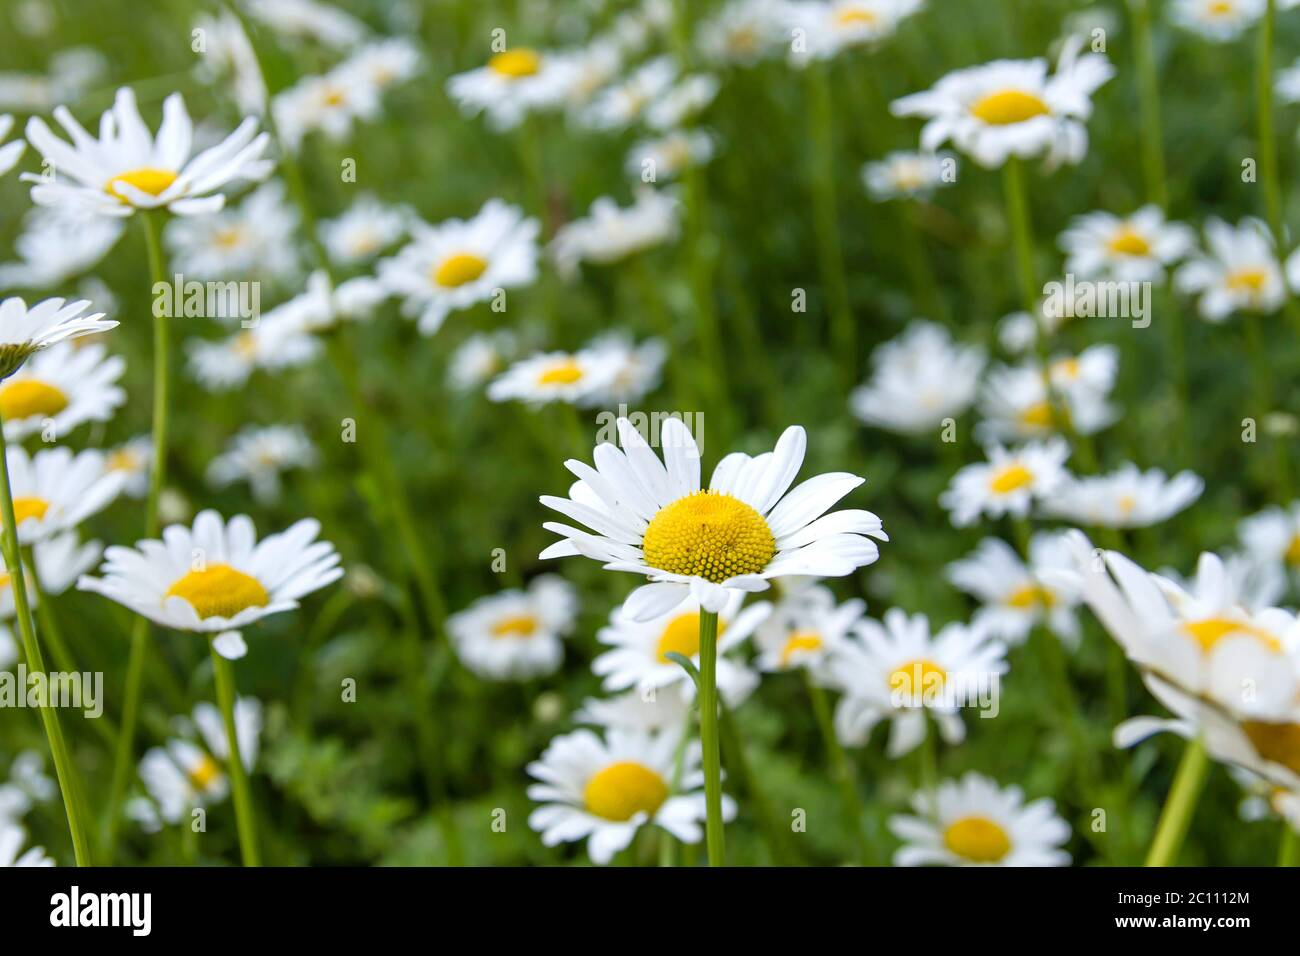 White daisy flowers blooming in spring Stock Photo